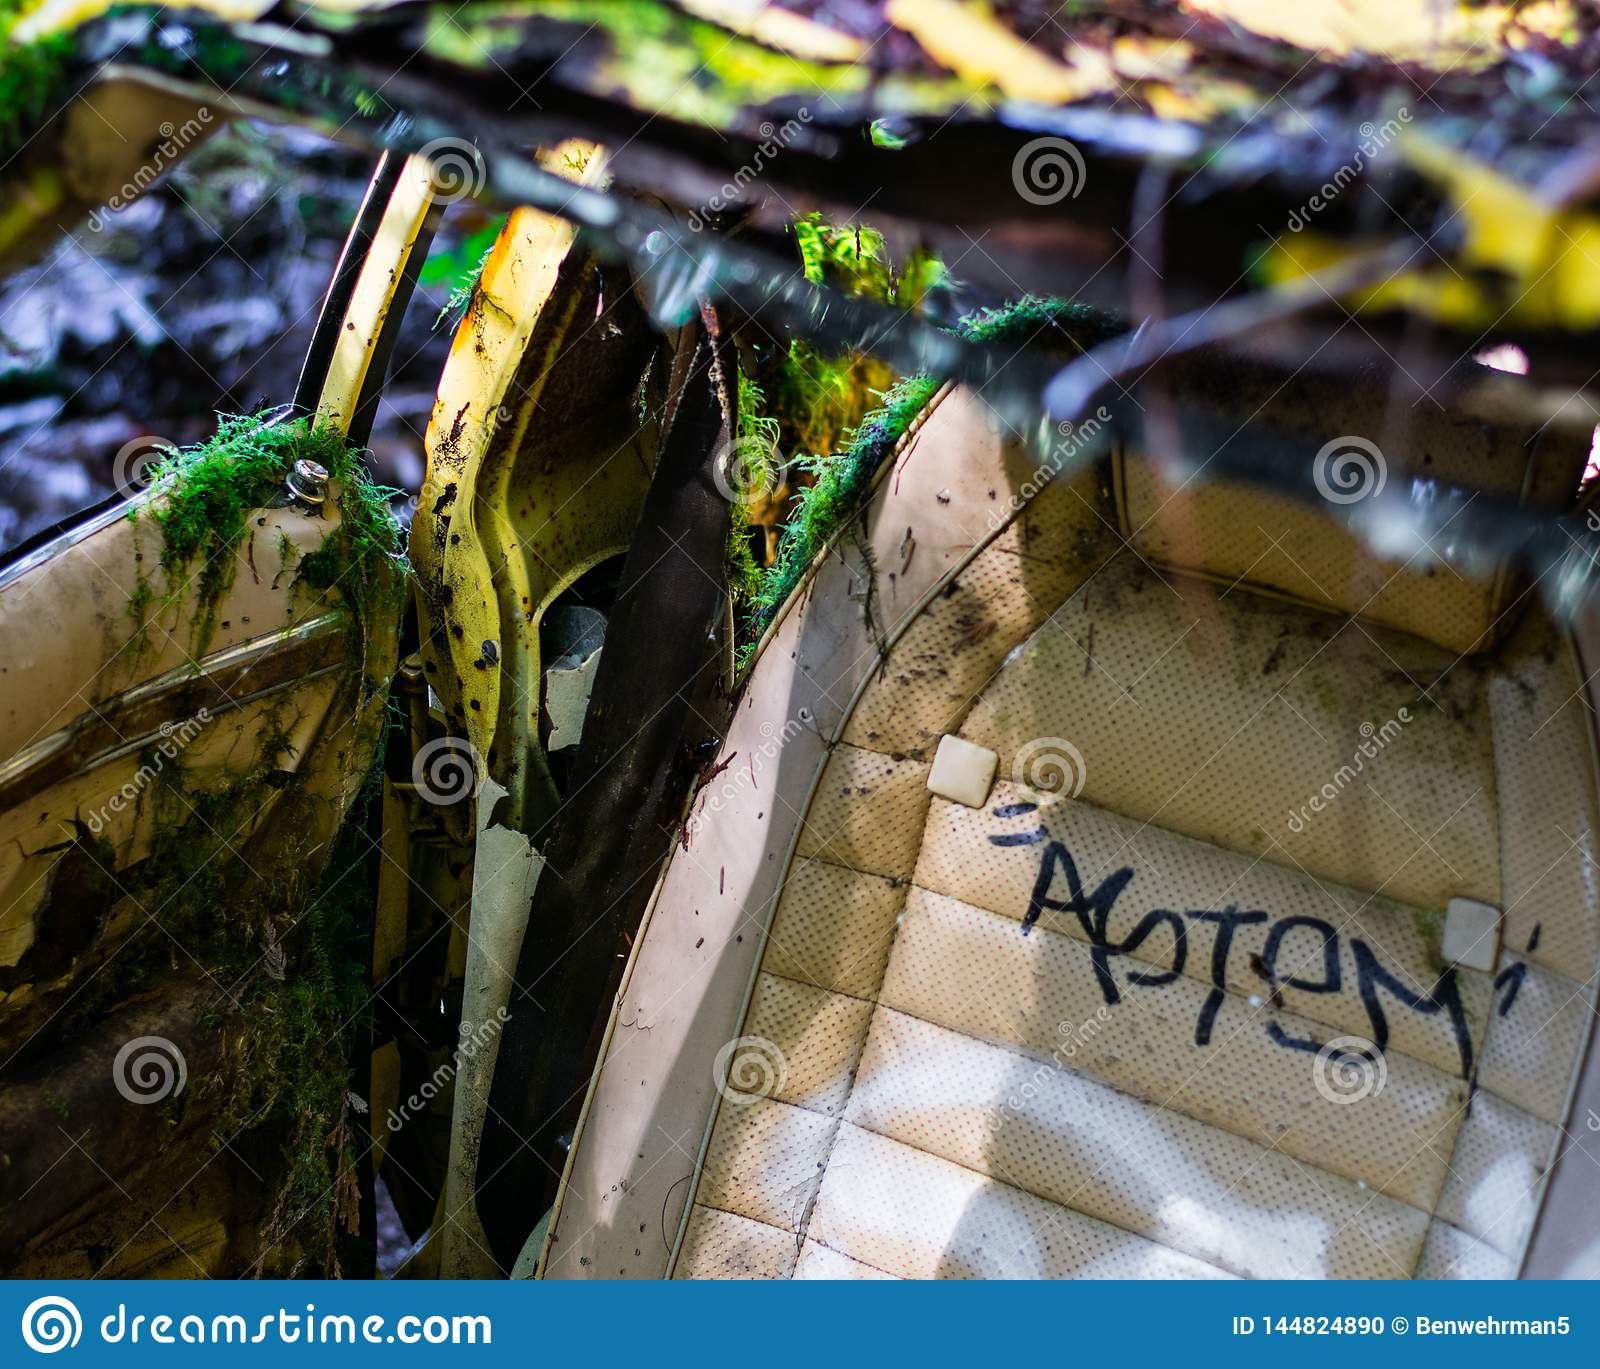 Abandoned Car in Forest Overgrowth